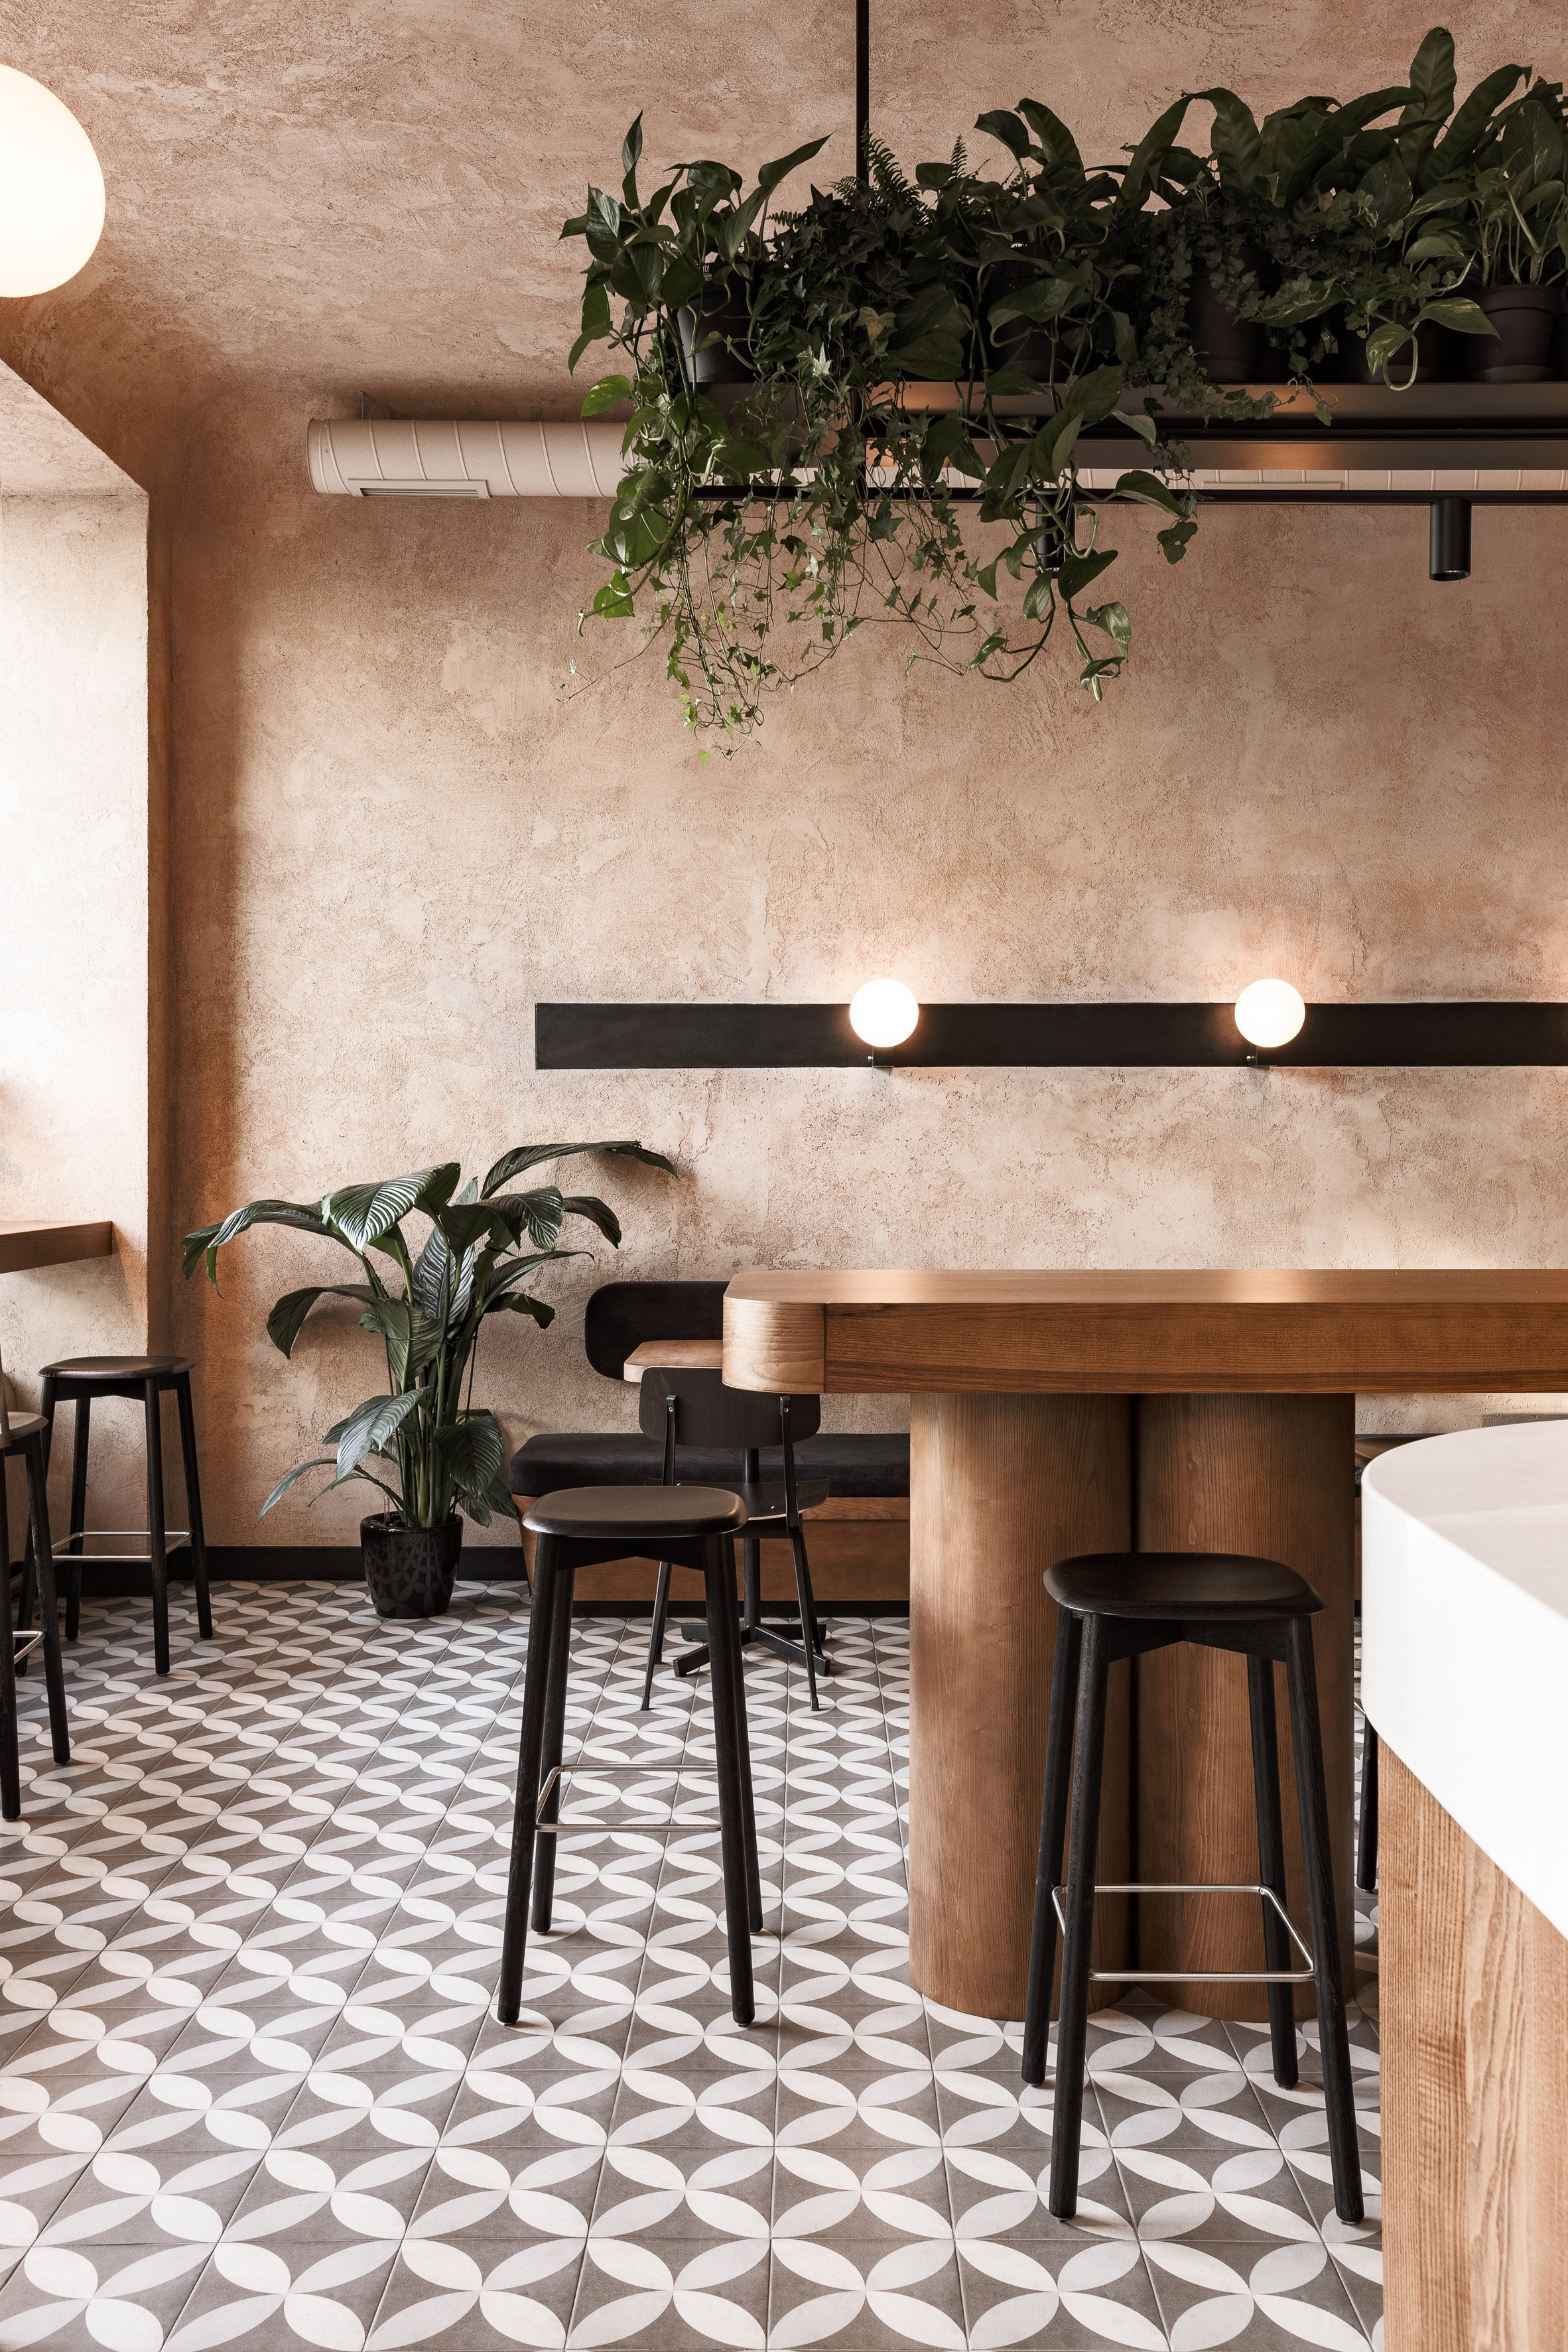 Interiors of Daily cafe by Sivak & Partners